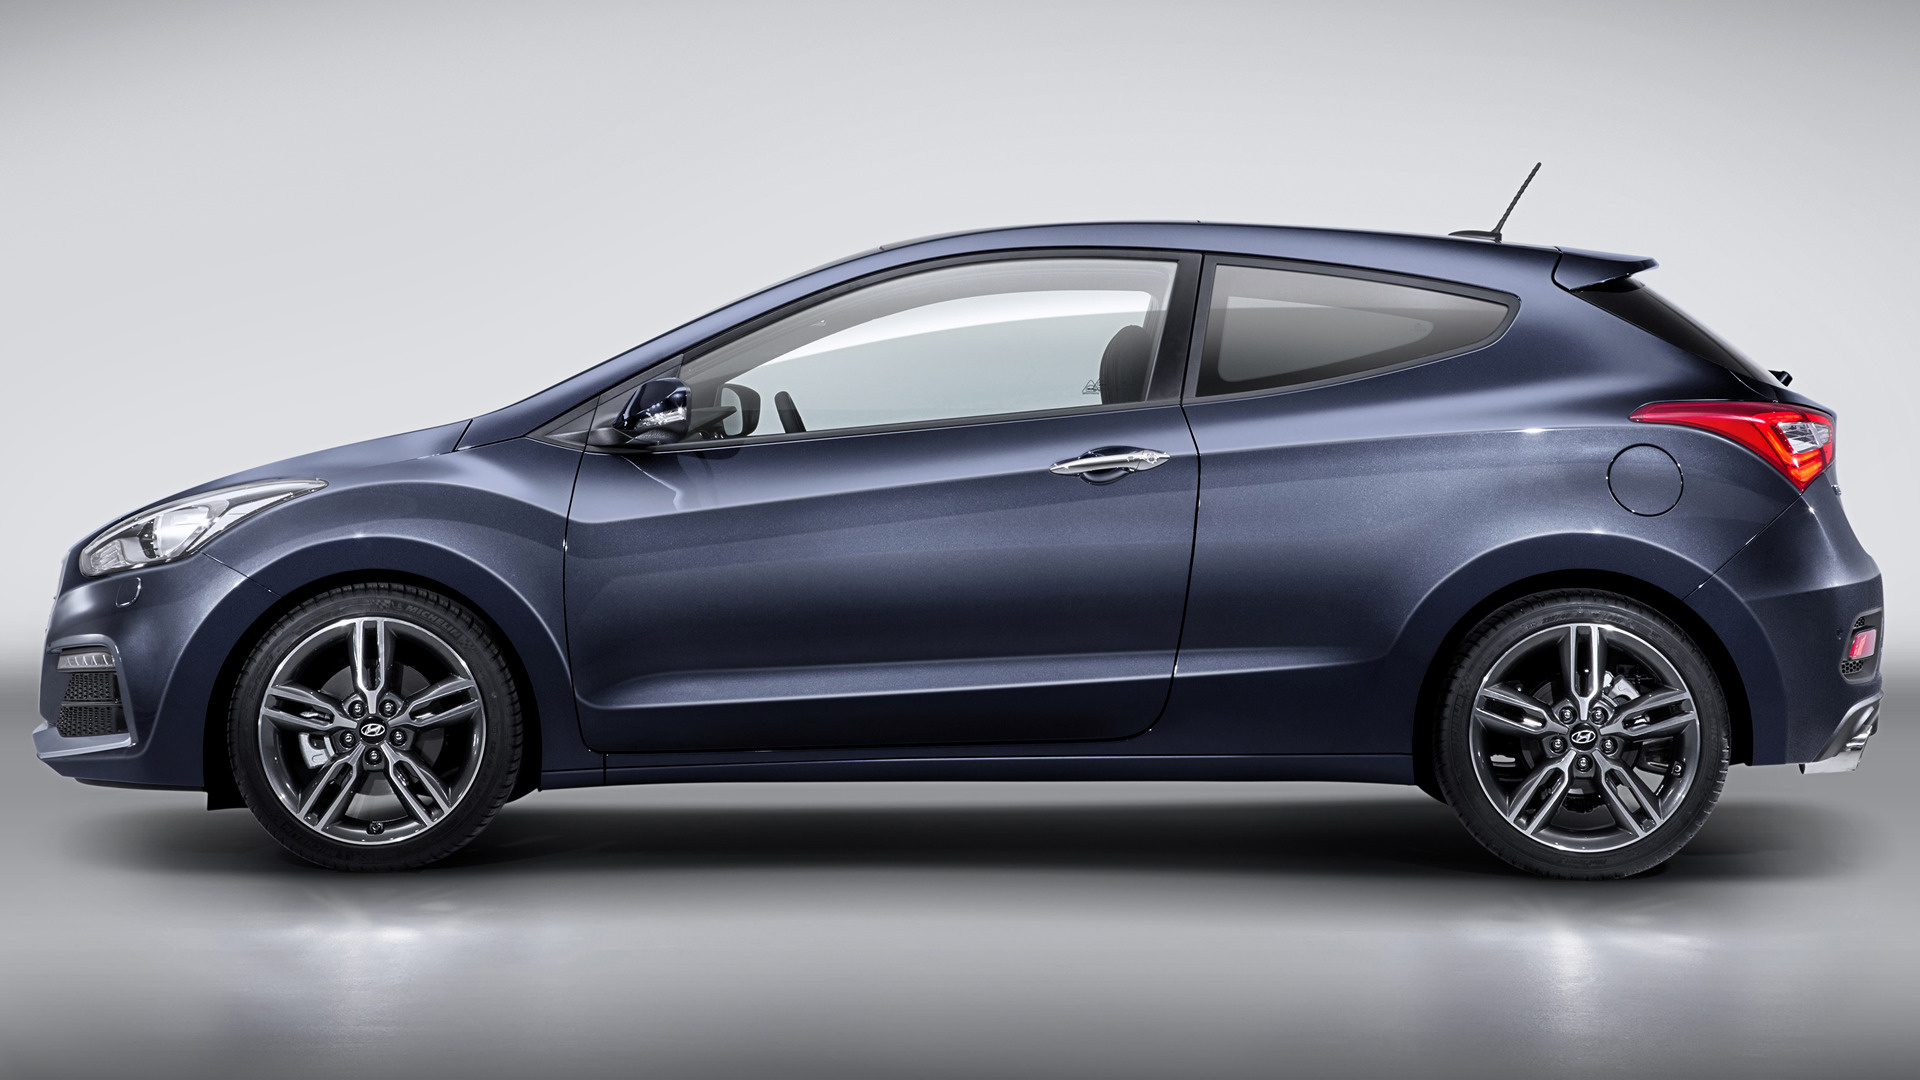 Awesome Hyundai I30 3door Turbo 2015 Wallpapers And HD Images